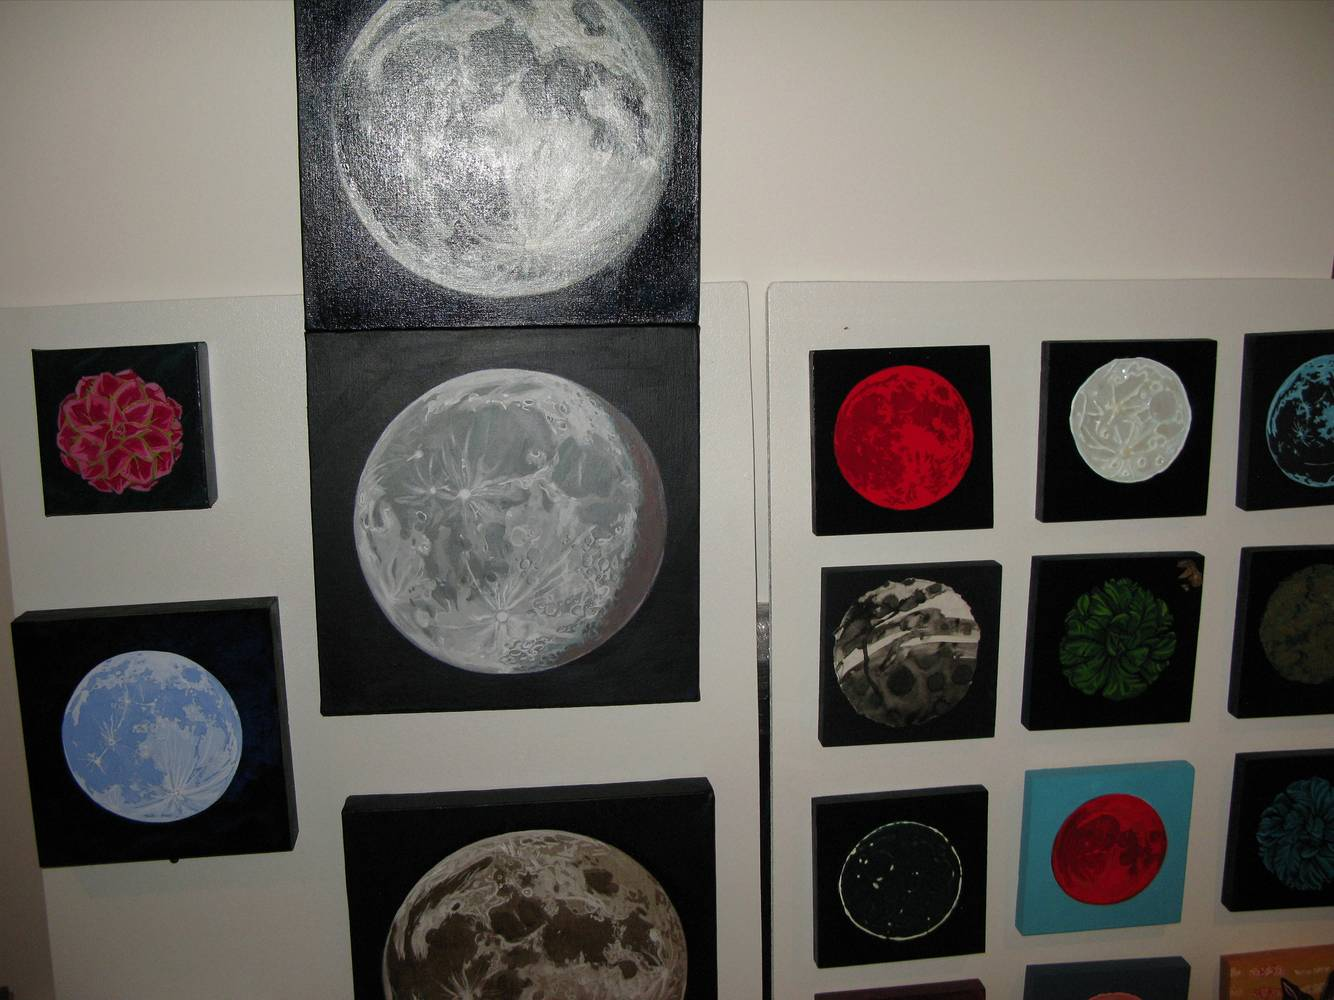 Moon paintings in the studio by Amber Macgregor